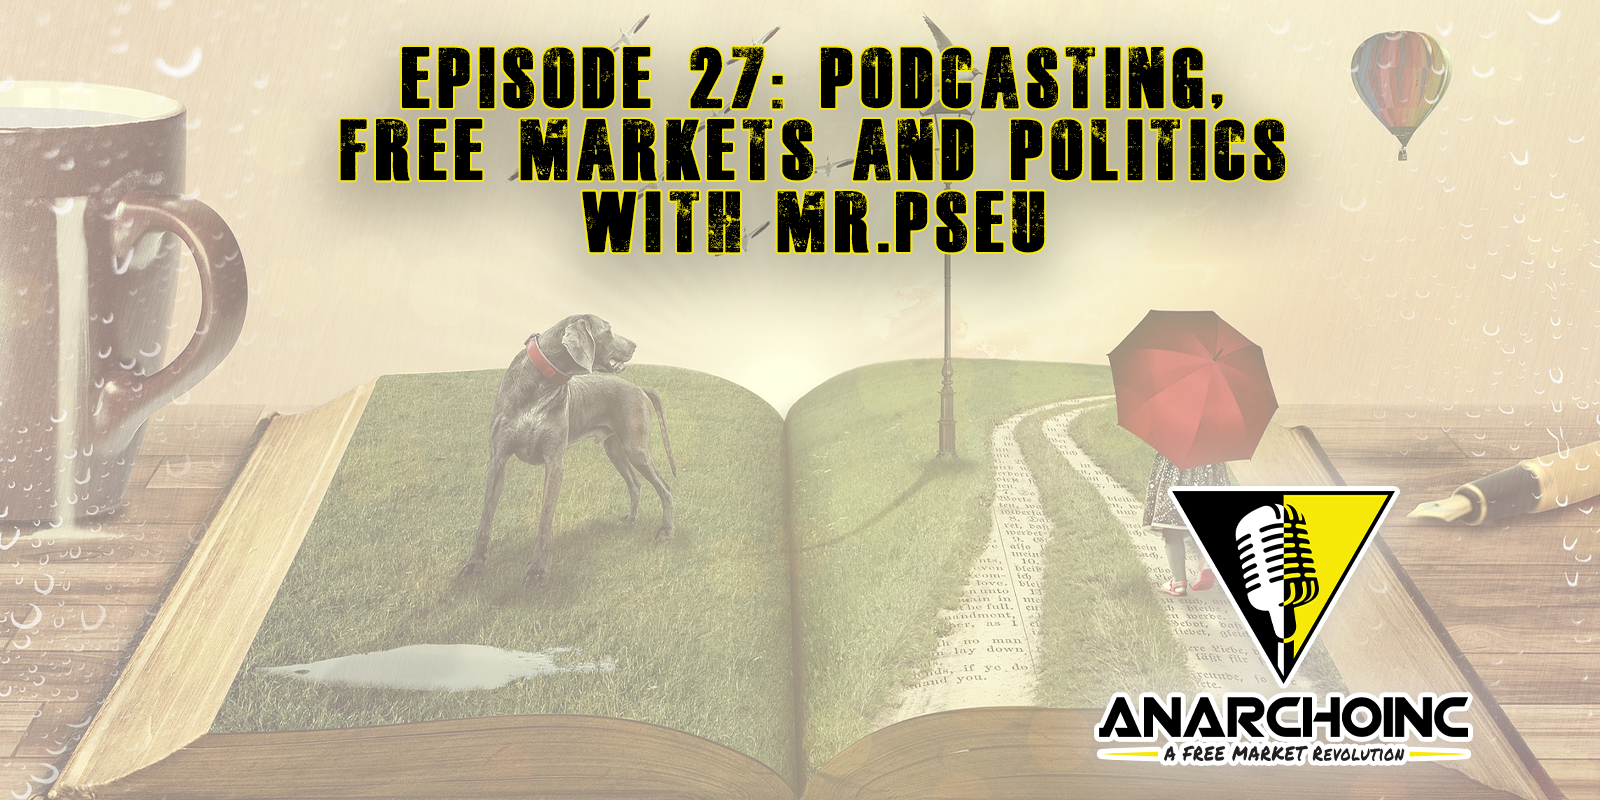 Episode 27: Podcasting, Free Markets and Politics with Mr.Pseu